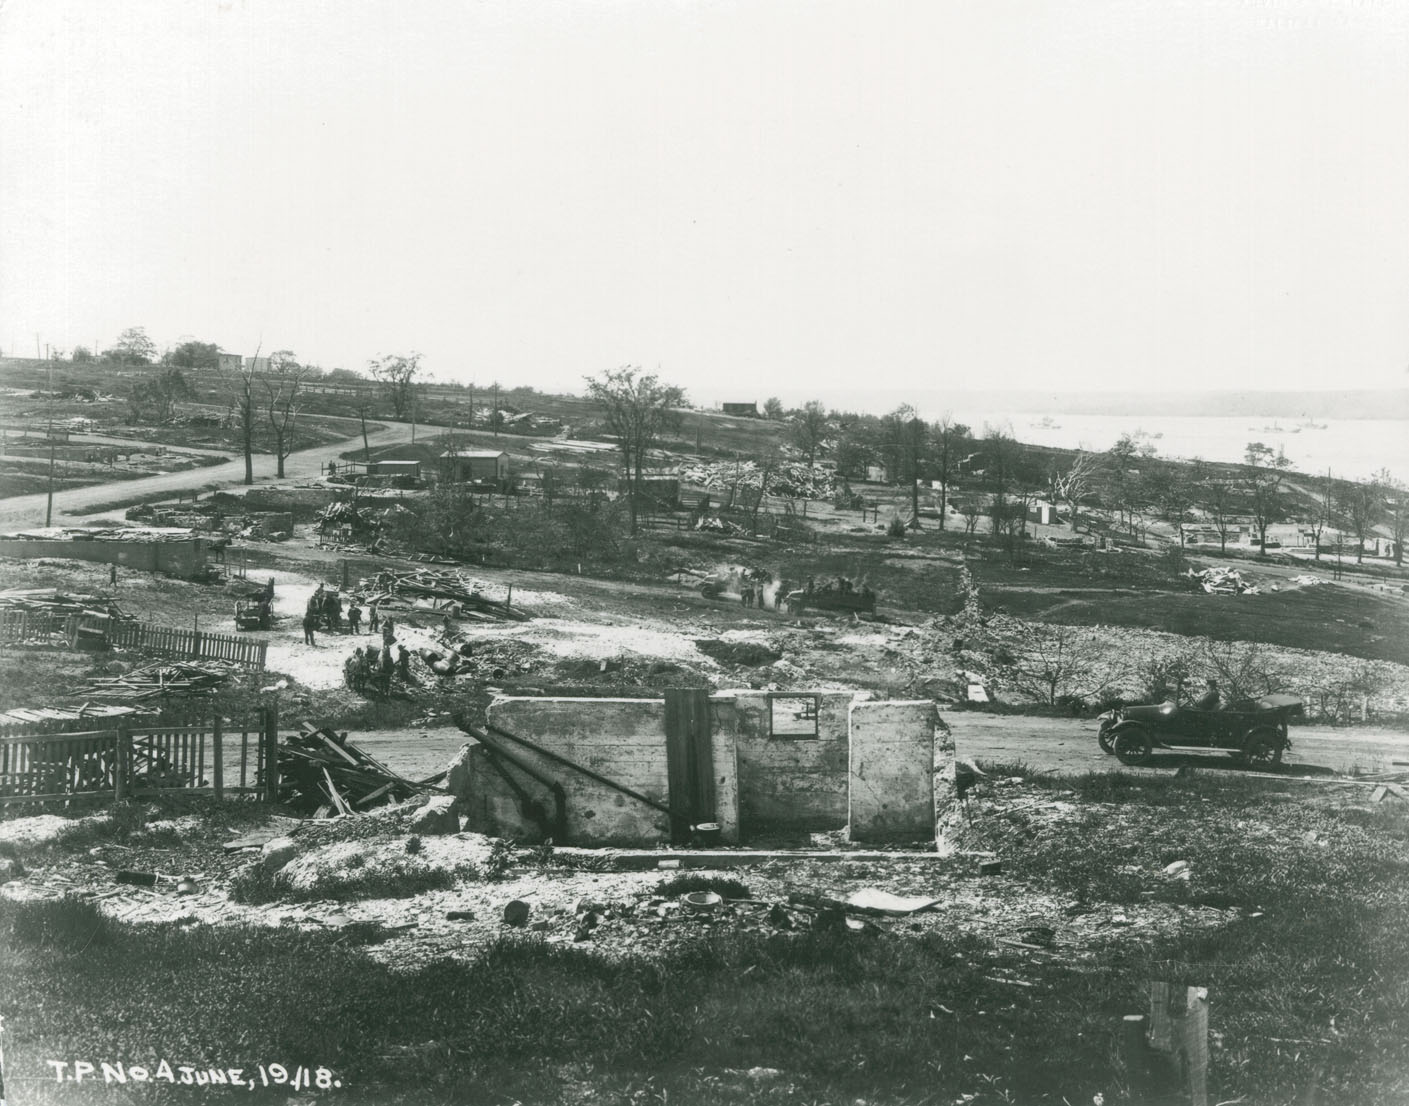 Looking north from Acadia Square towards Duffus Street showing clean-up prior to reconstruction